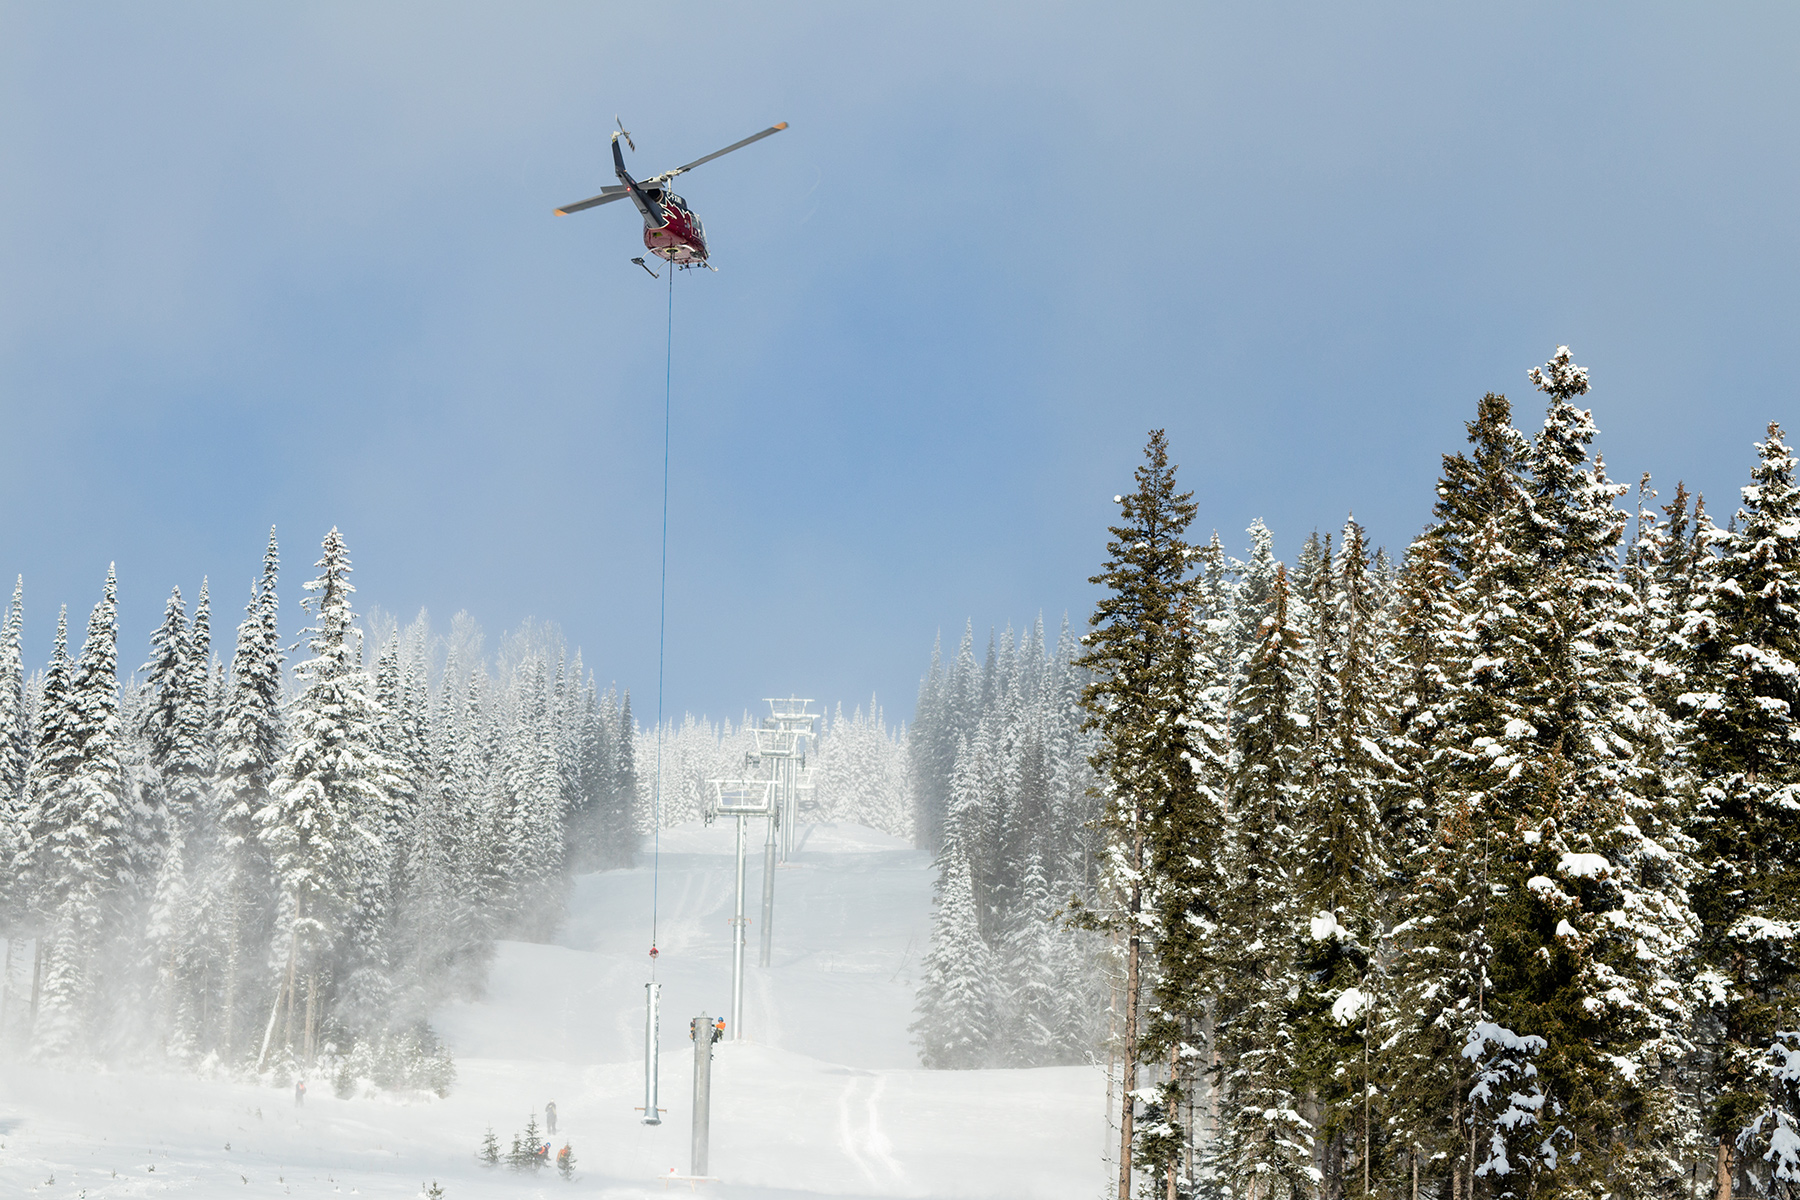 Heli Installing Towers for the Orient Chairlift